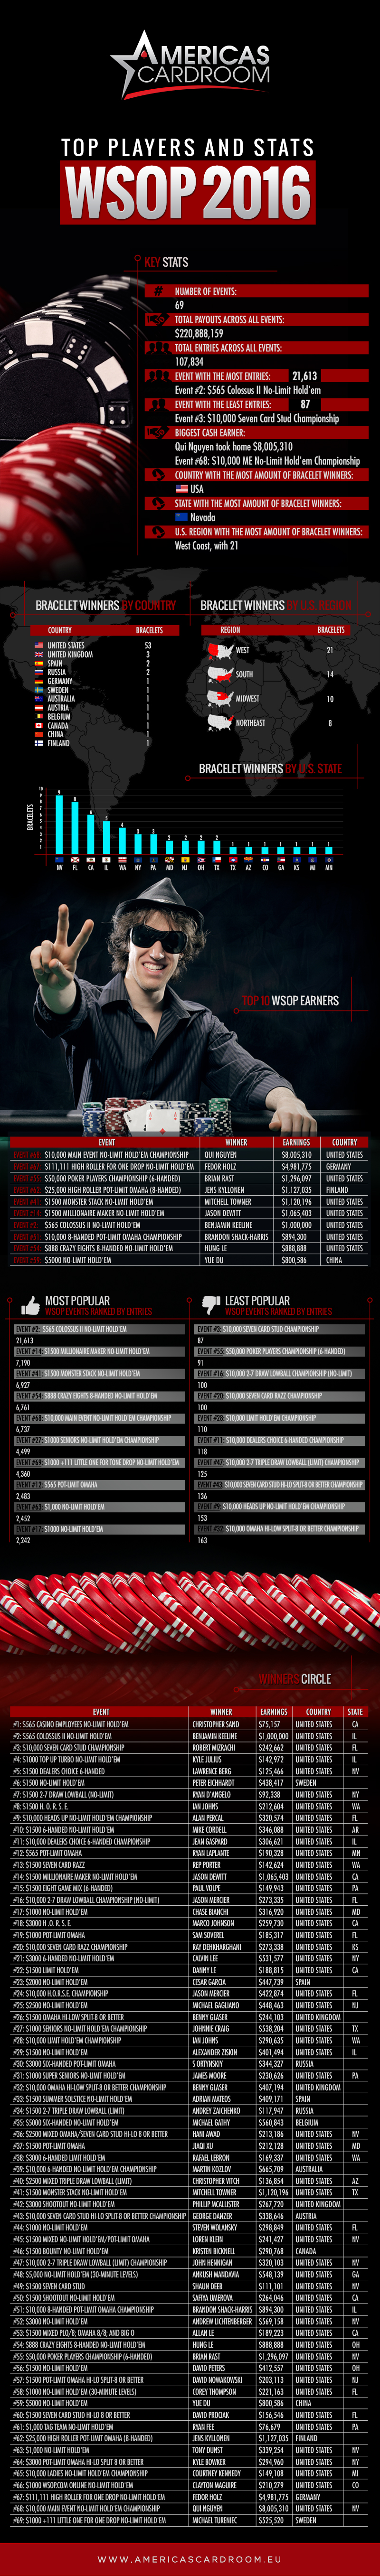 Check poker player stats